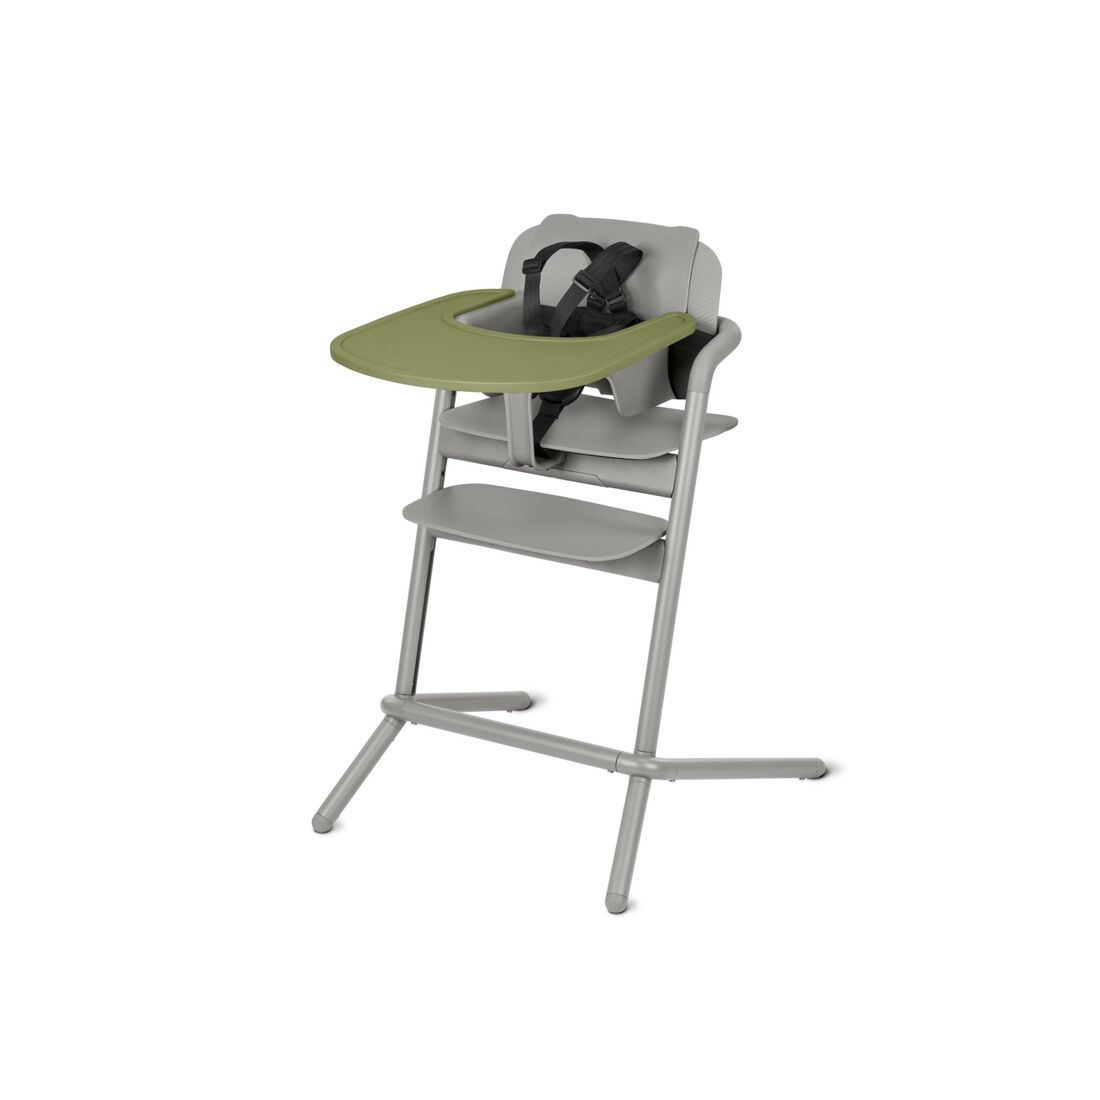 CYBEX Lemo Tray - Outback Green in Outback Green large Bild 1